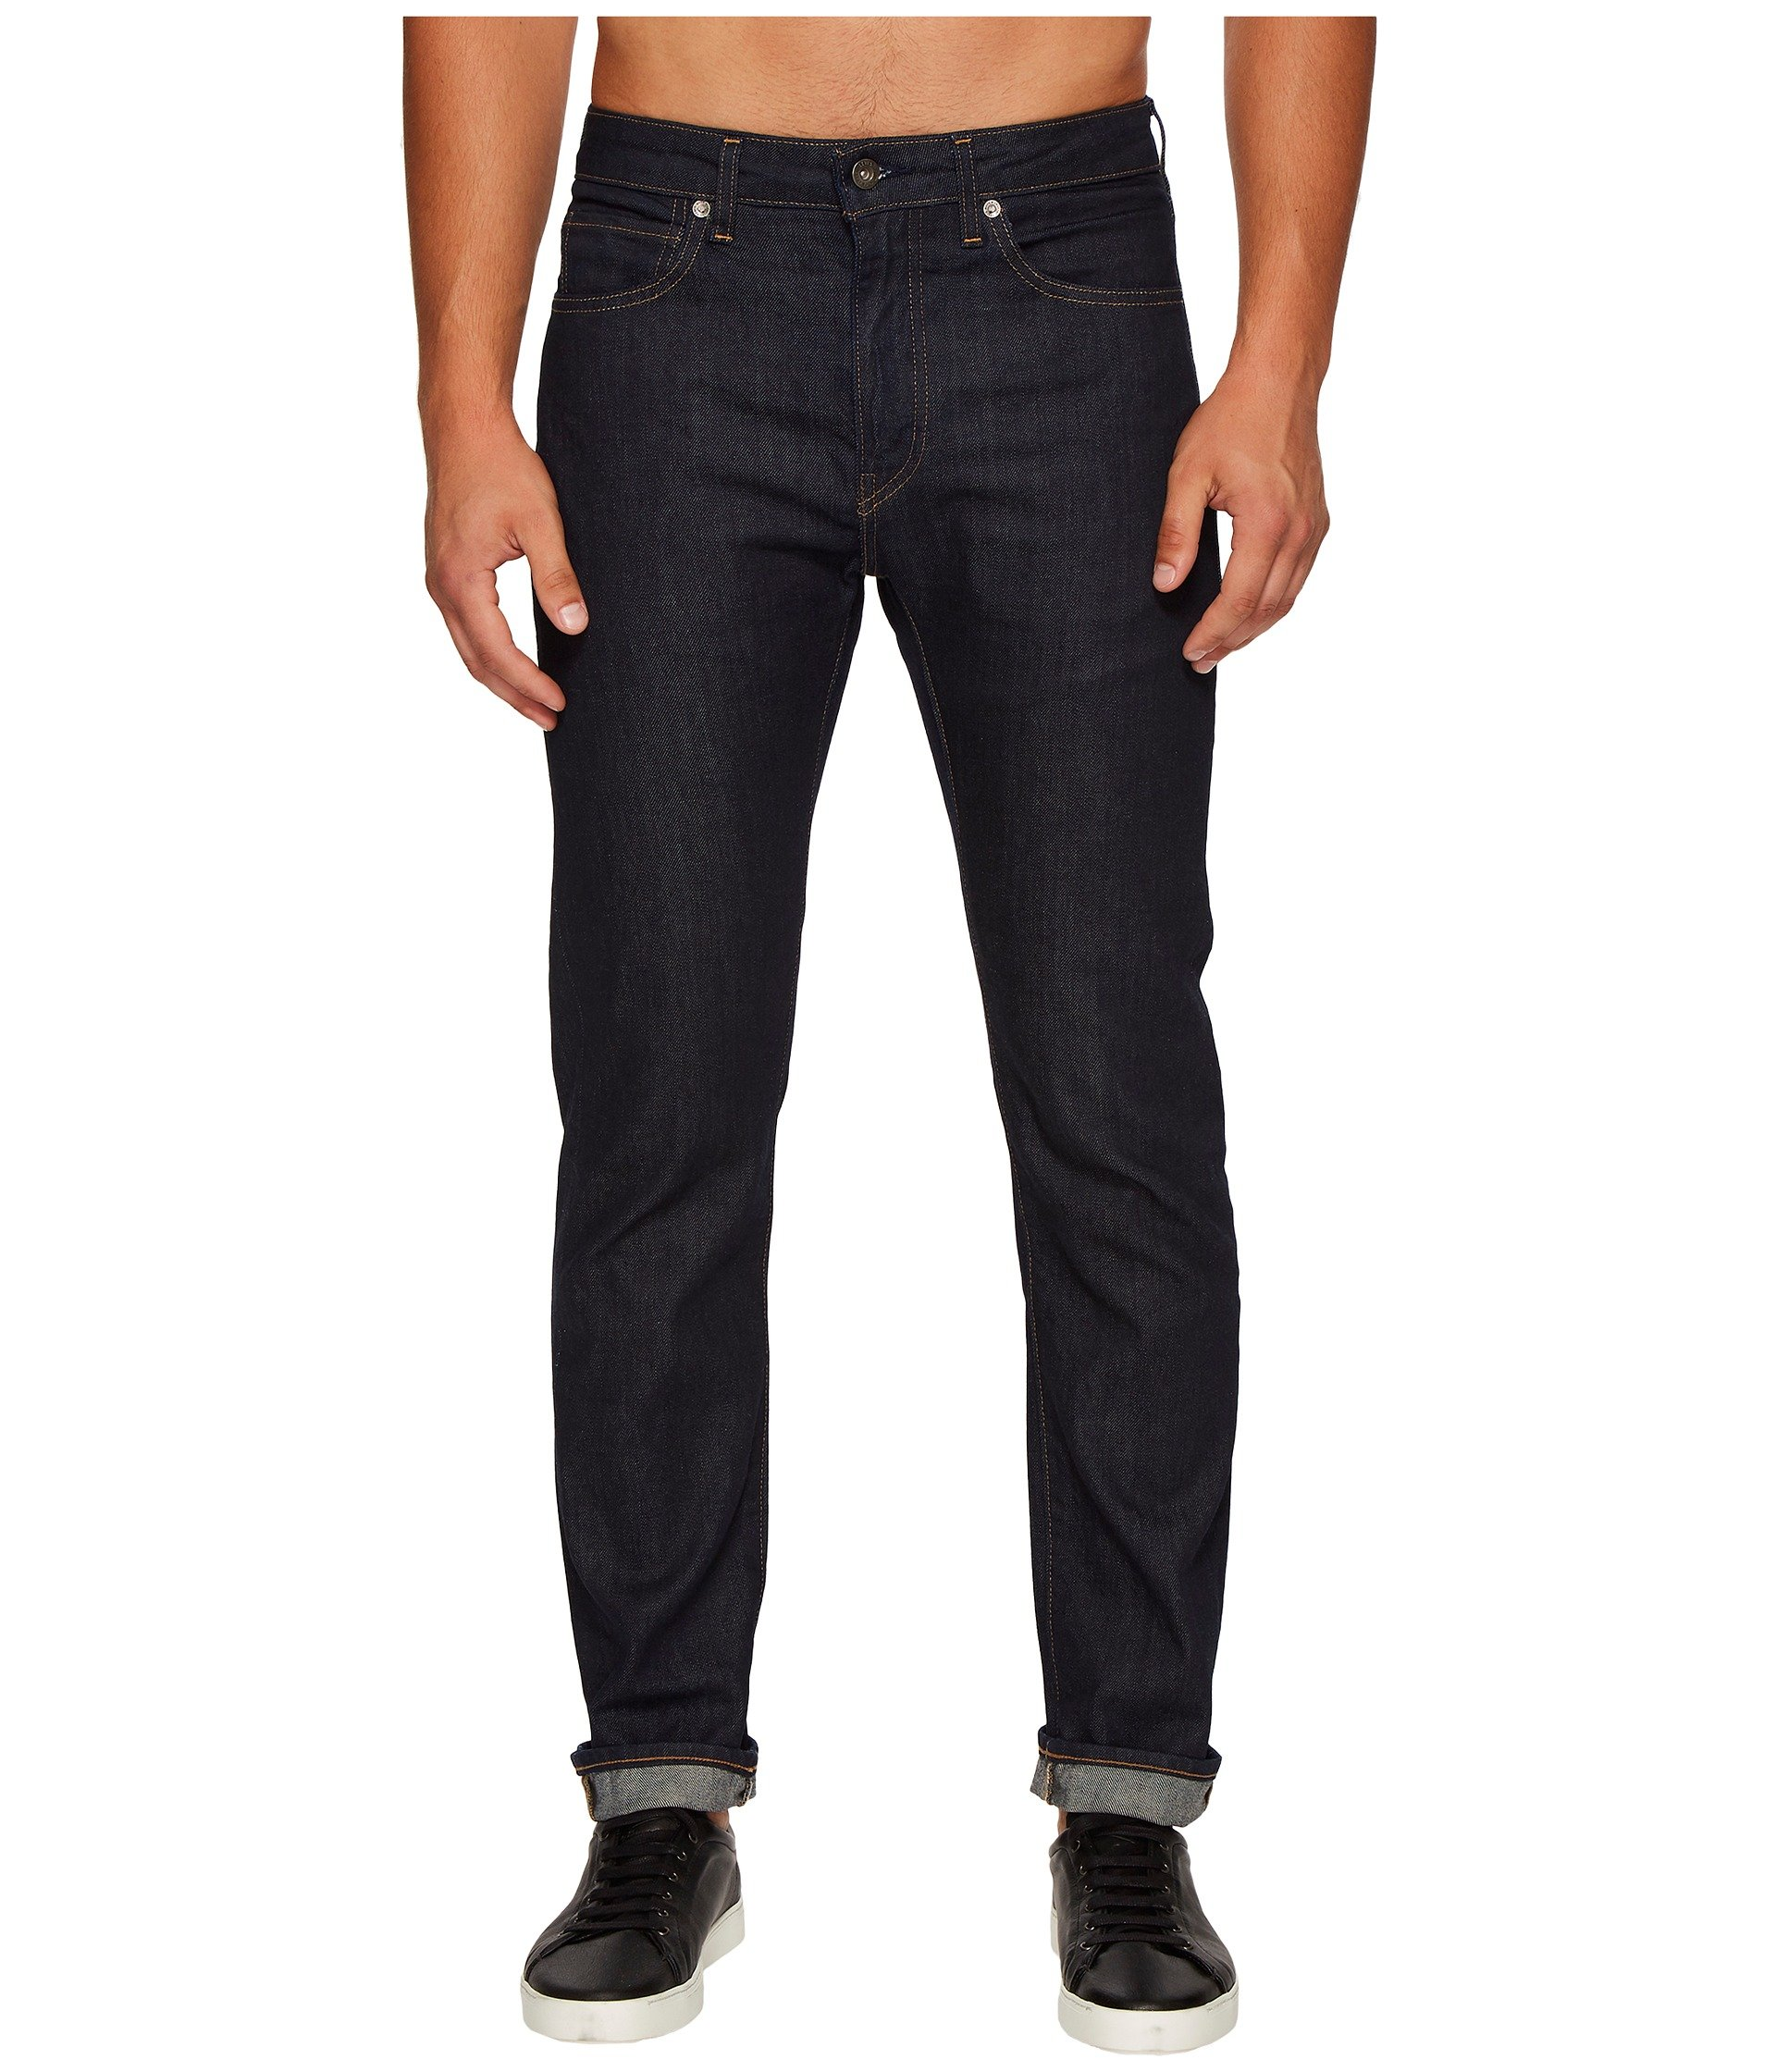 Levi 39 s premium made crafted studio slim taper jeans at for Levi s made and crafted